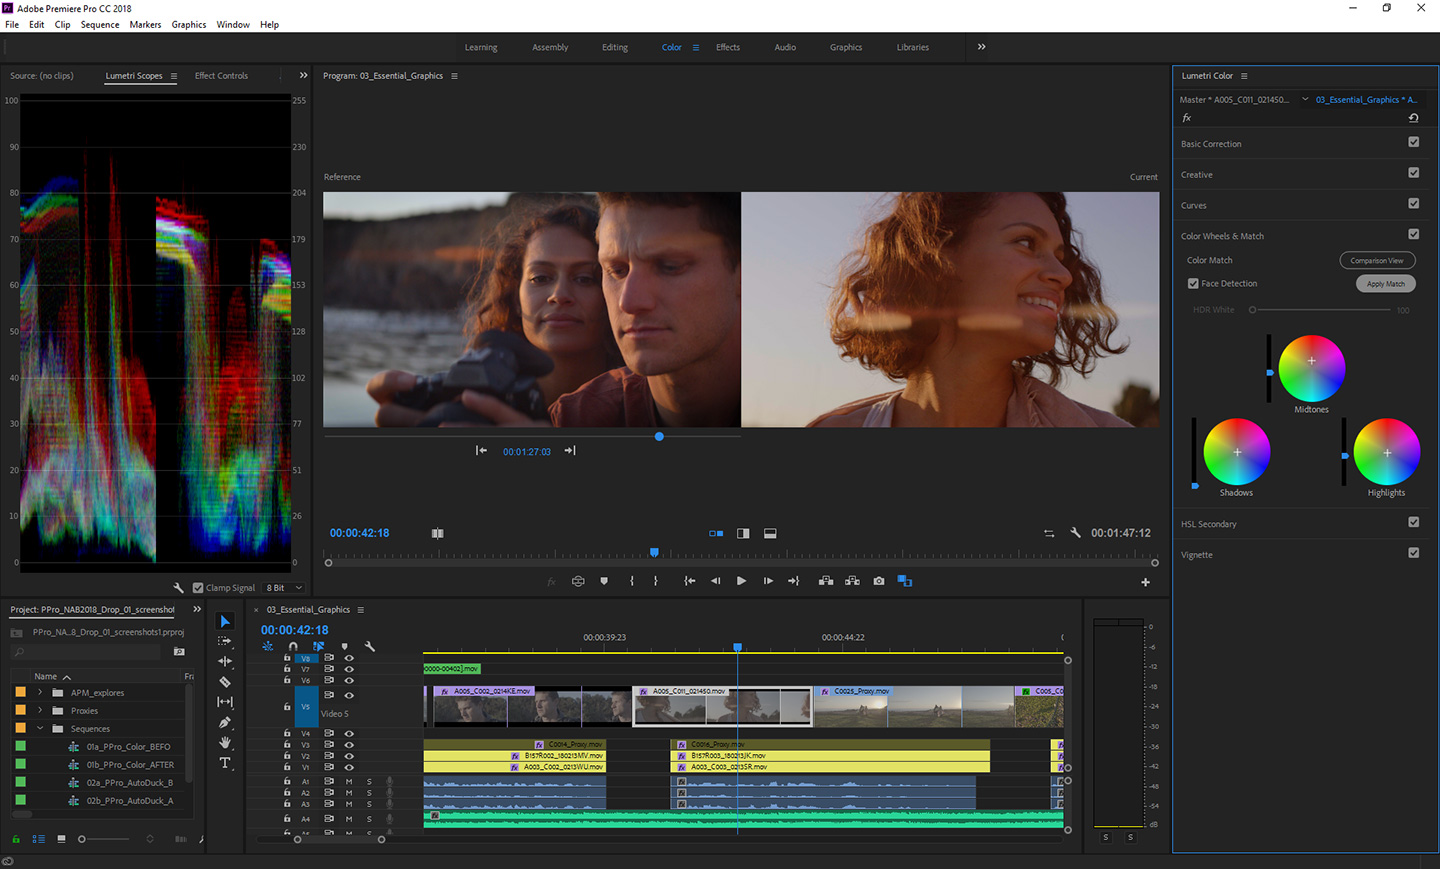 Adobe Updates All Creative Cloud Video Applications